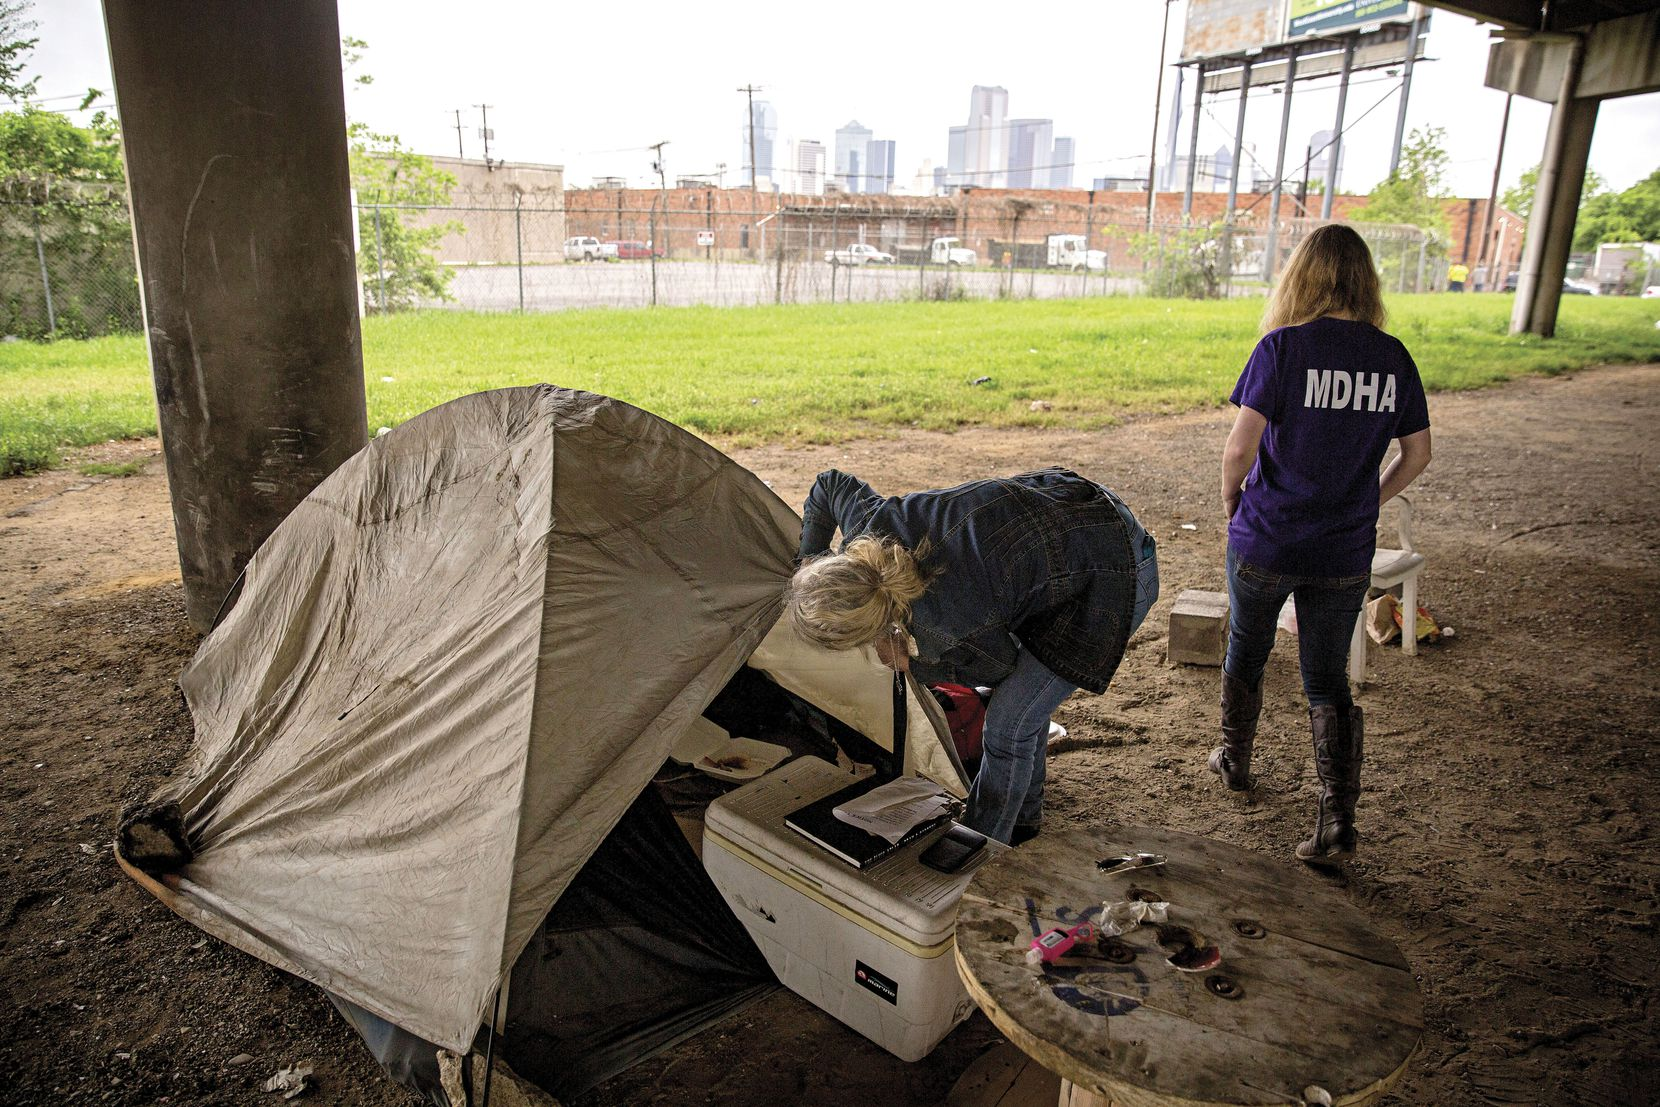 On April 19, Cindy Crain (left) and Rebecca Cox of the Metro Dallas Homeless Alliance sifted through belongings left in an abandoned section of the Tent City homeless camp in Dallas.